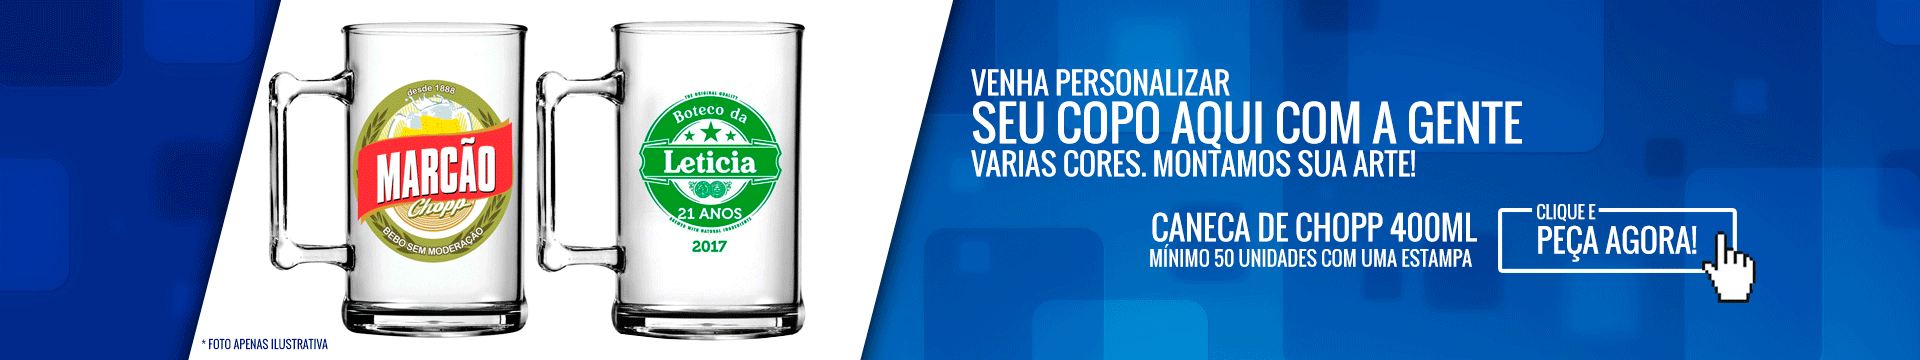 Full Banner Caneca de chopp de 400 ml